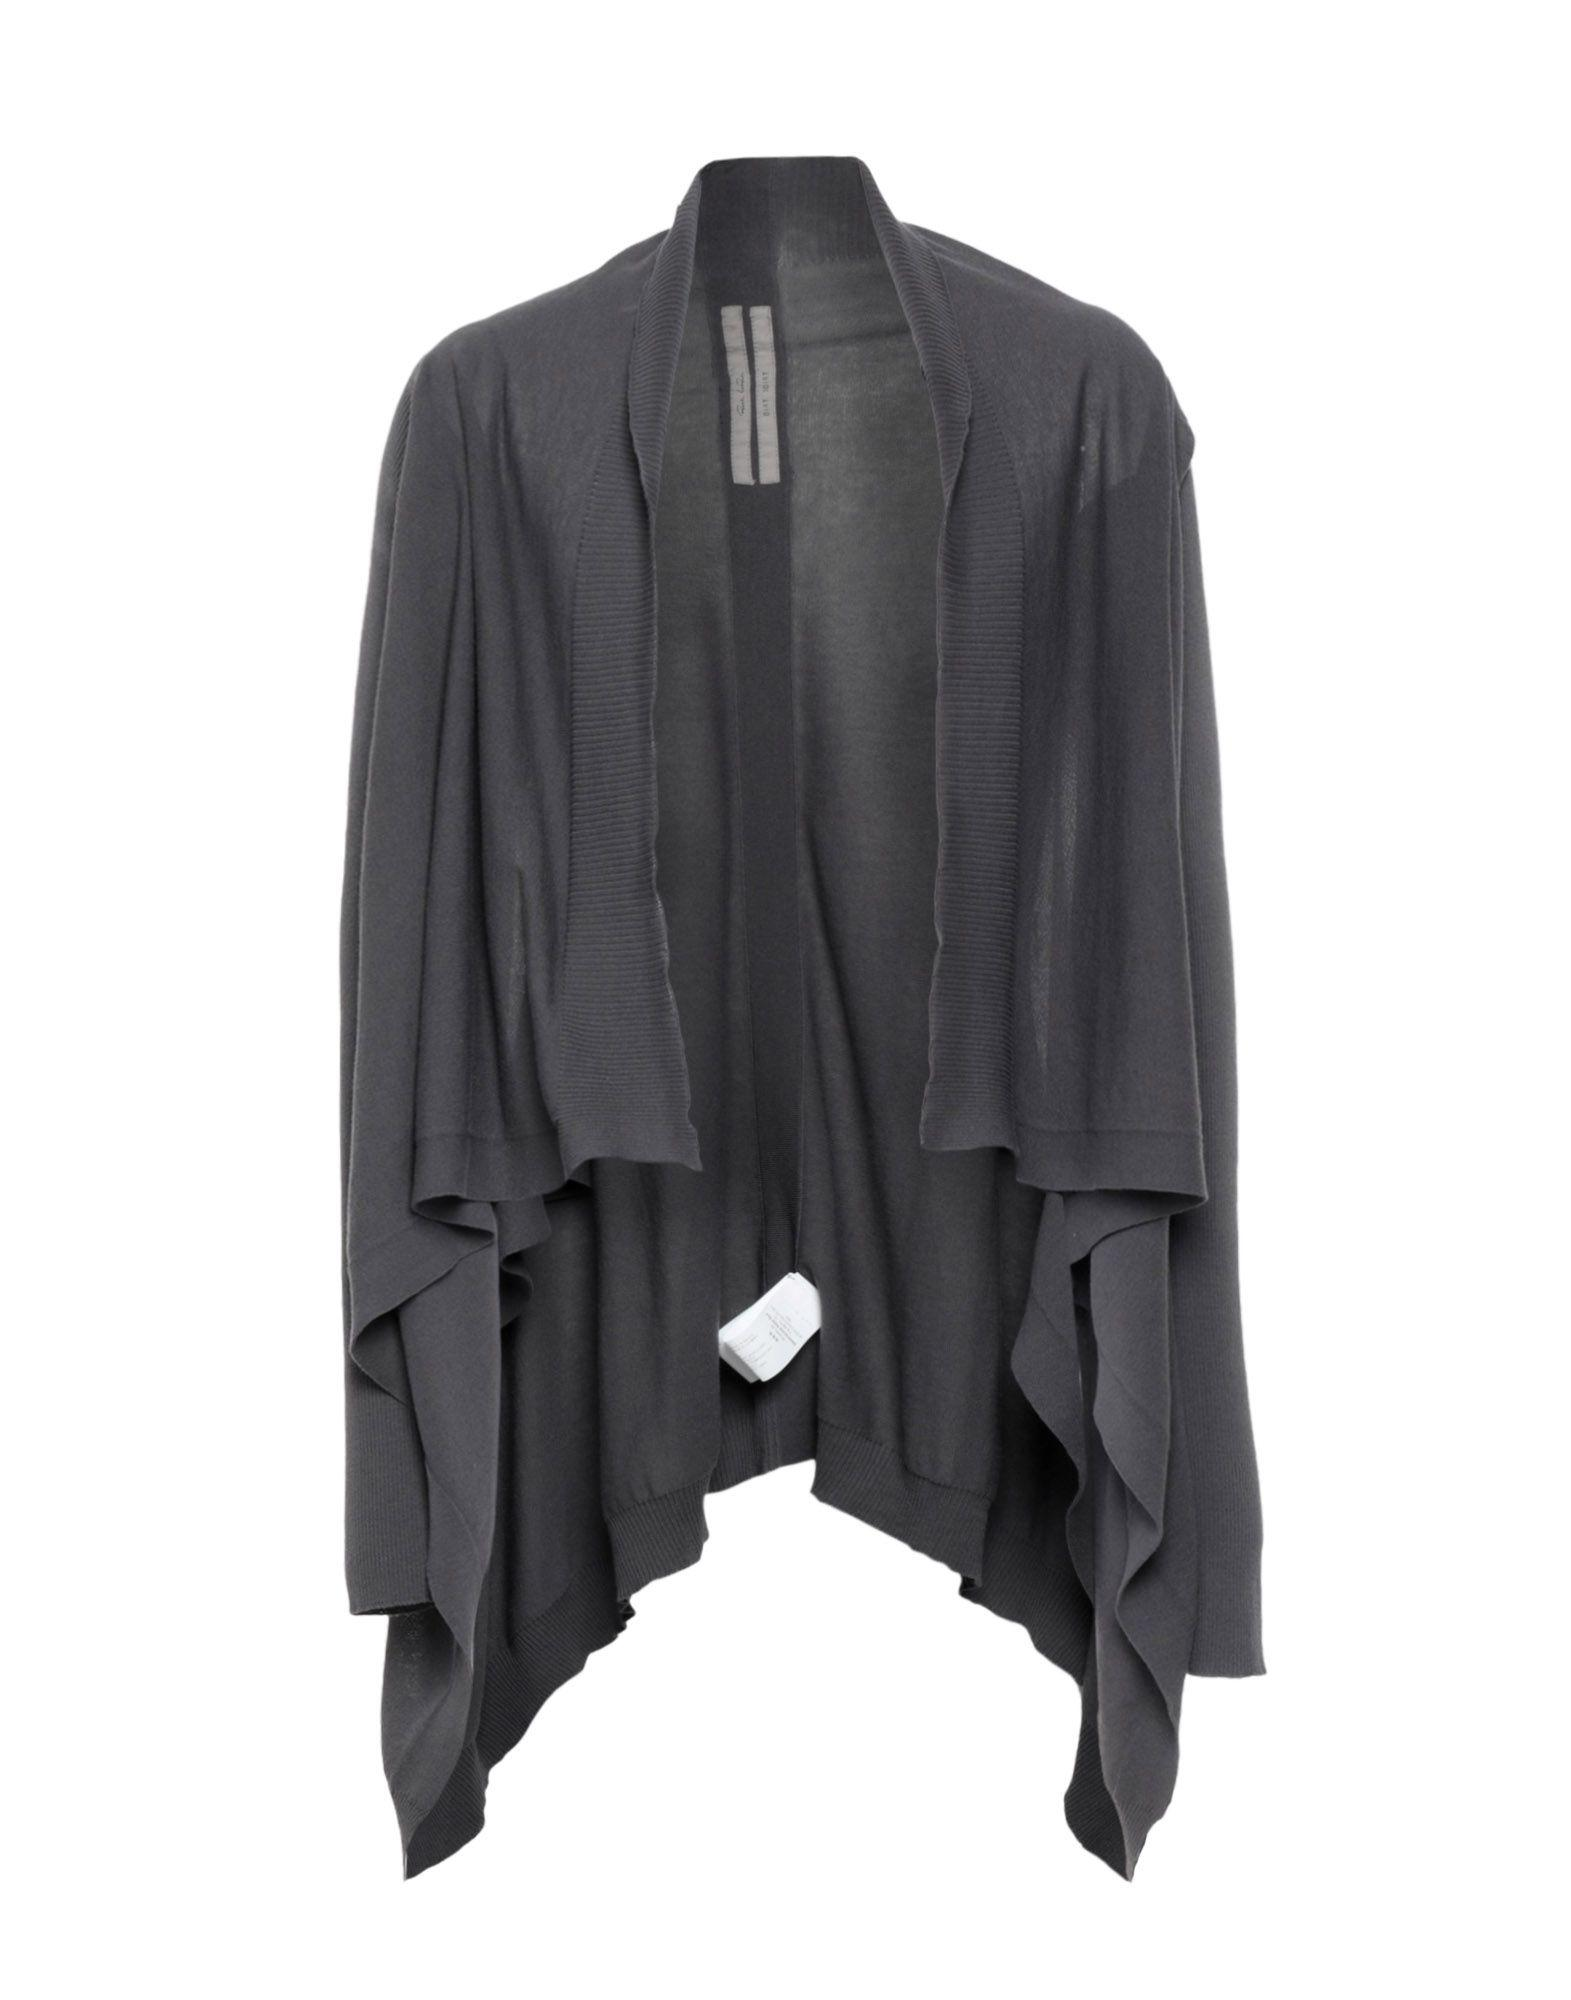 5f1d2a18acd7 Lyst - Rick Owens Cardigan in Gray for Men